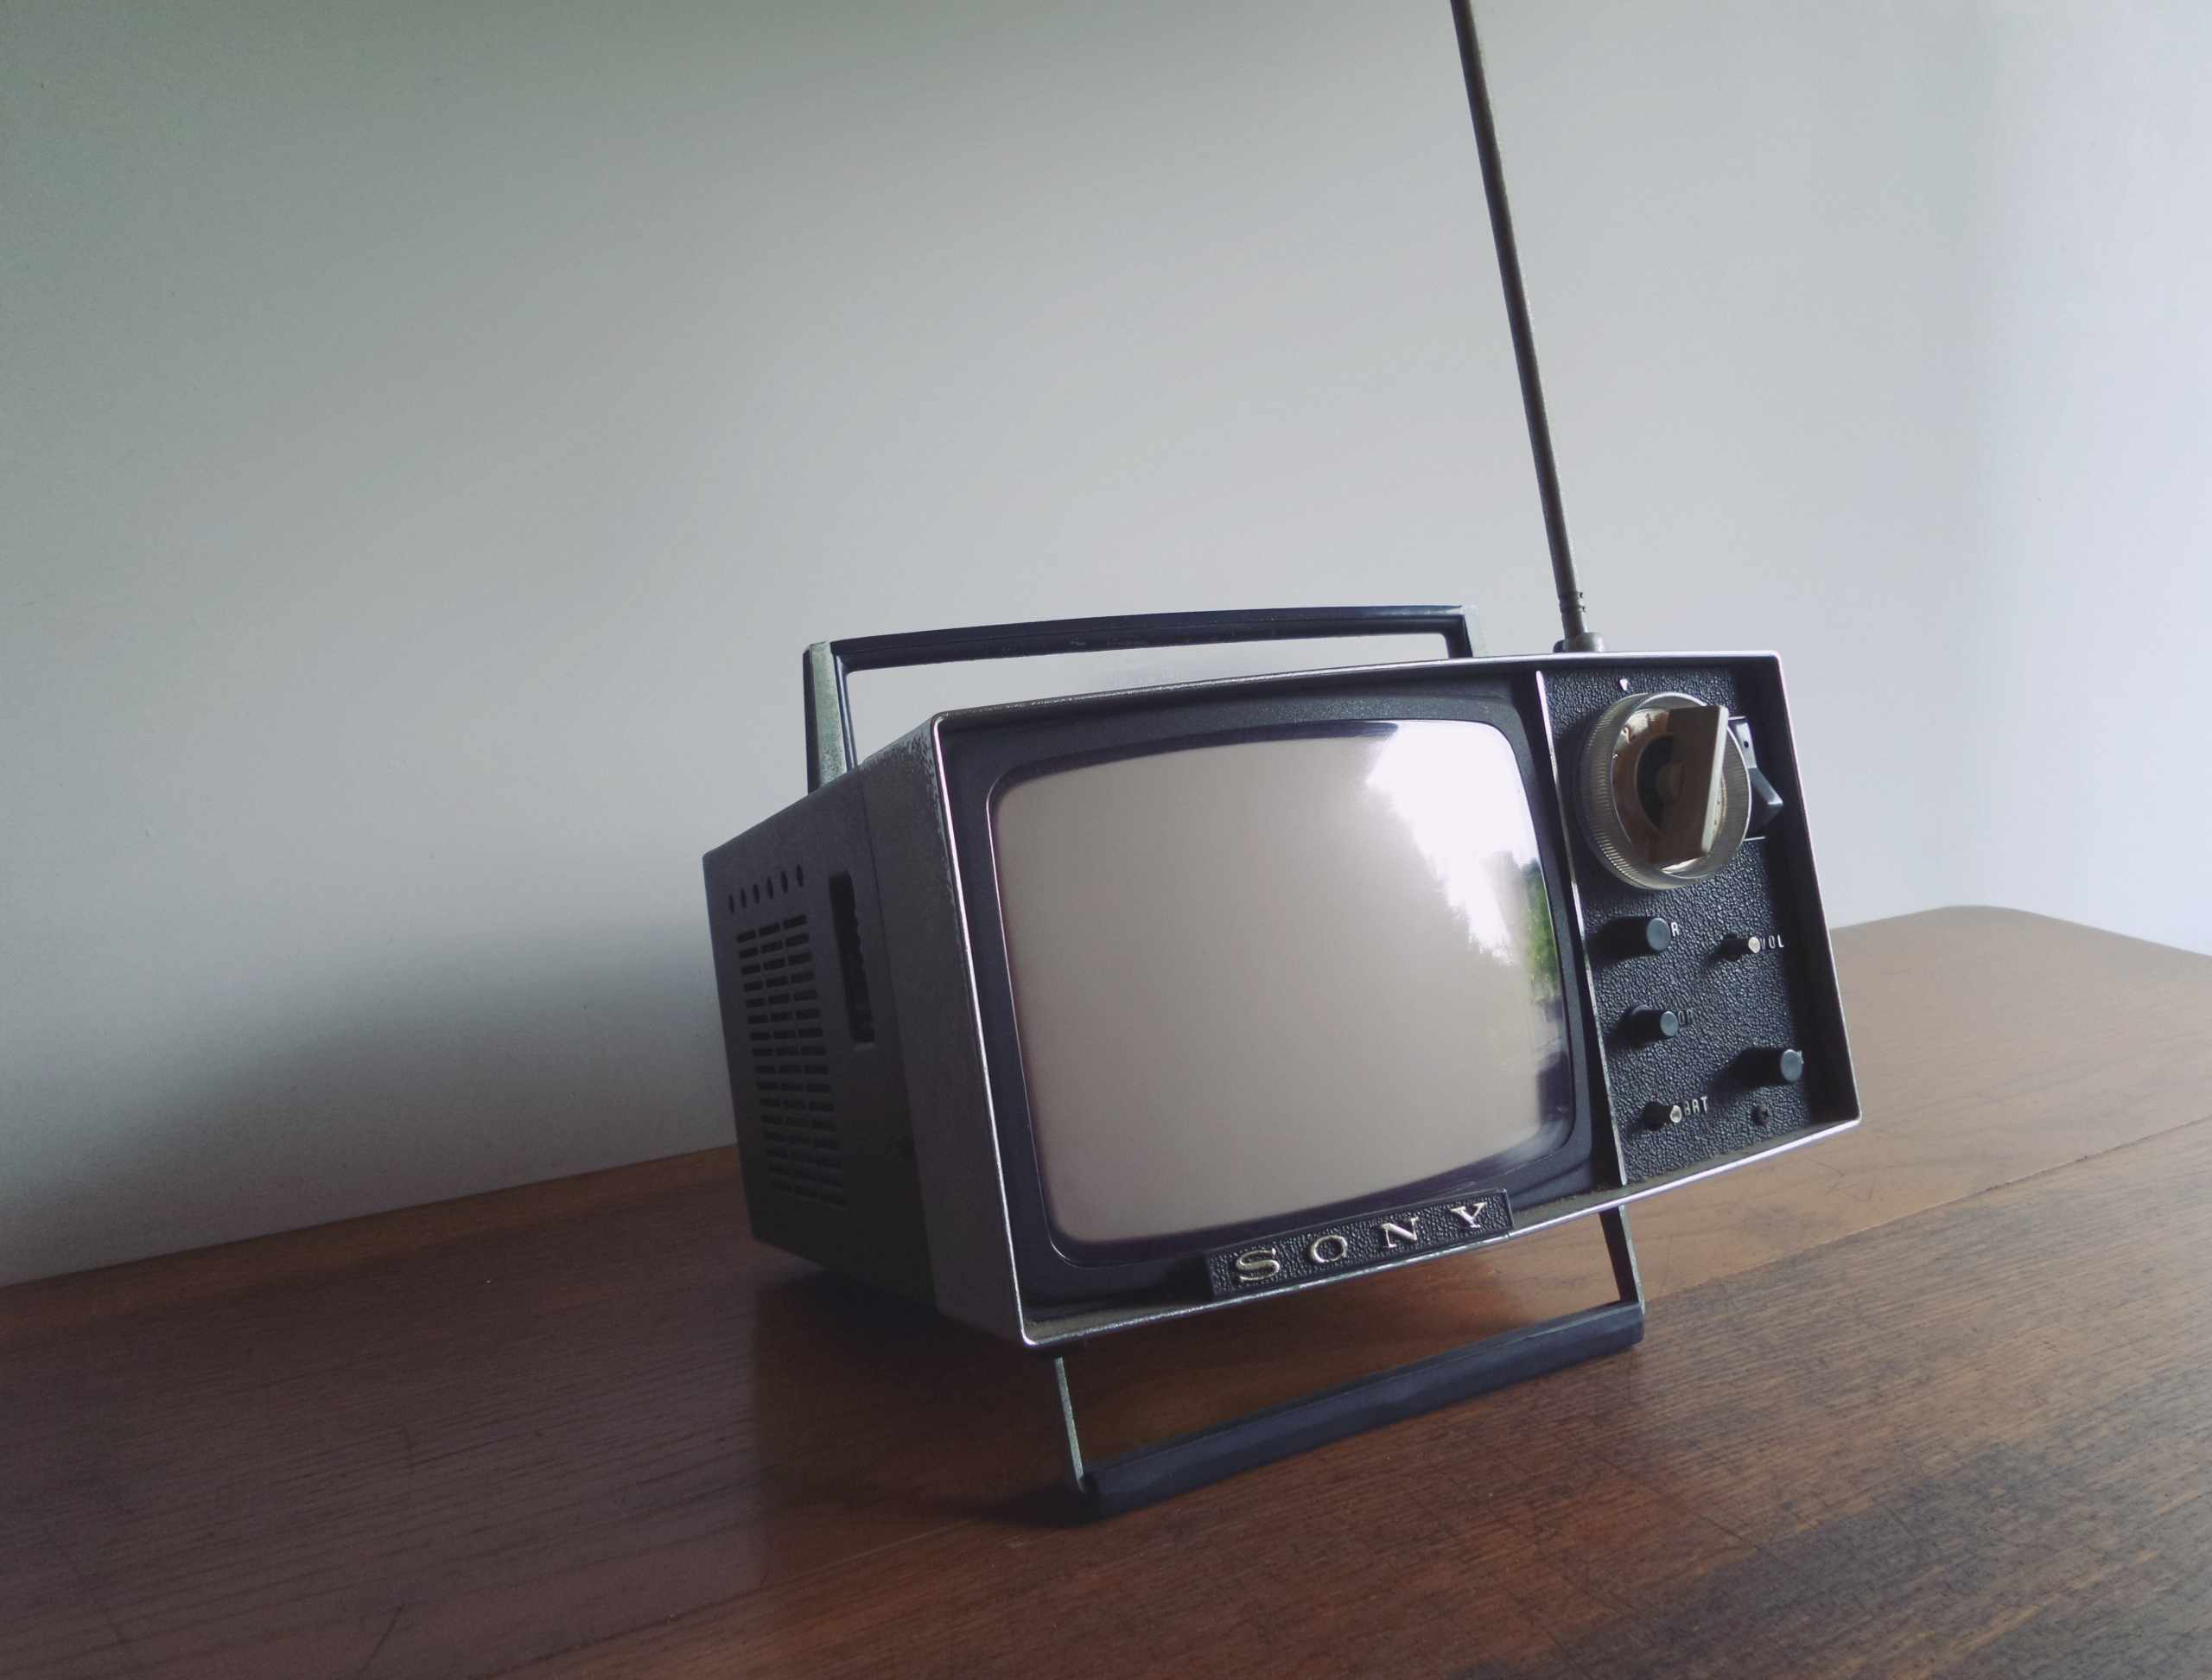 Will cable TV become cheaper with the competition